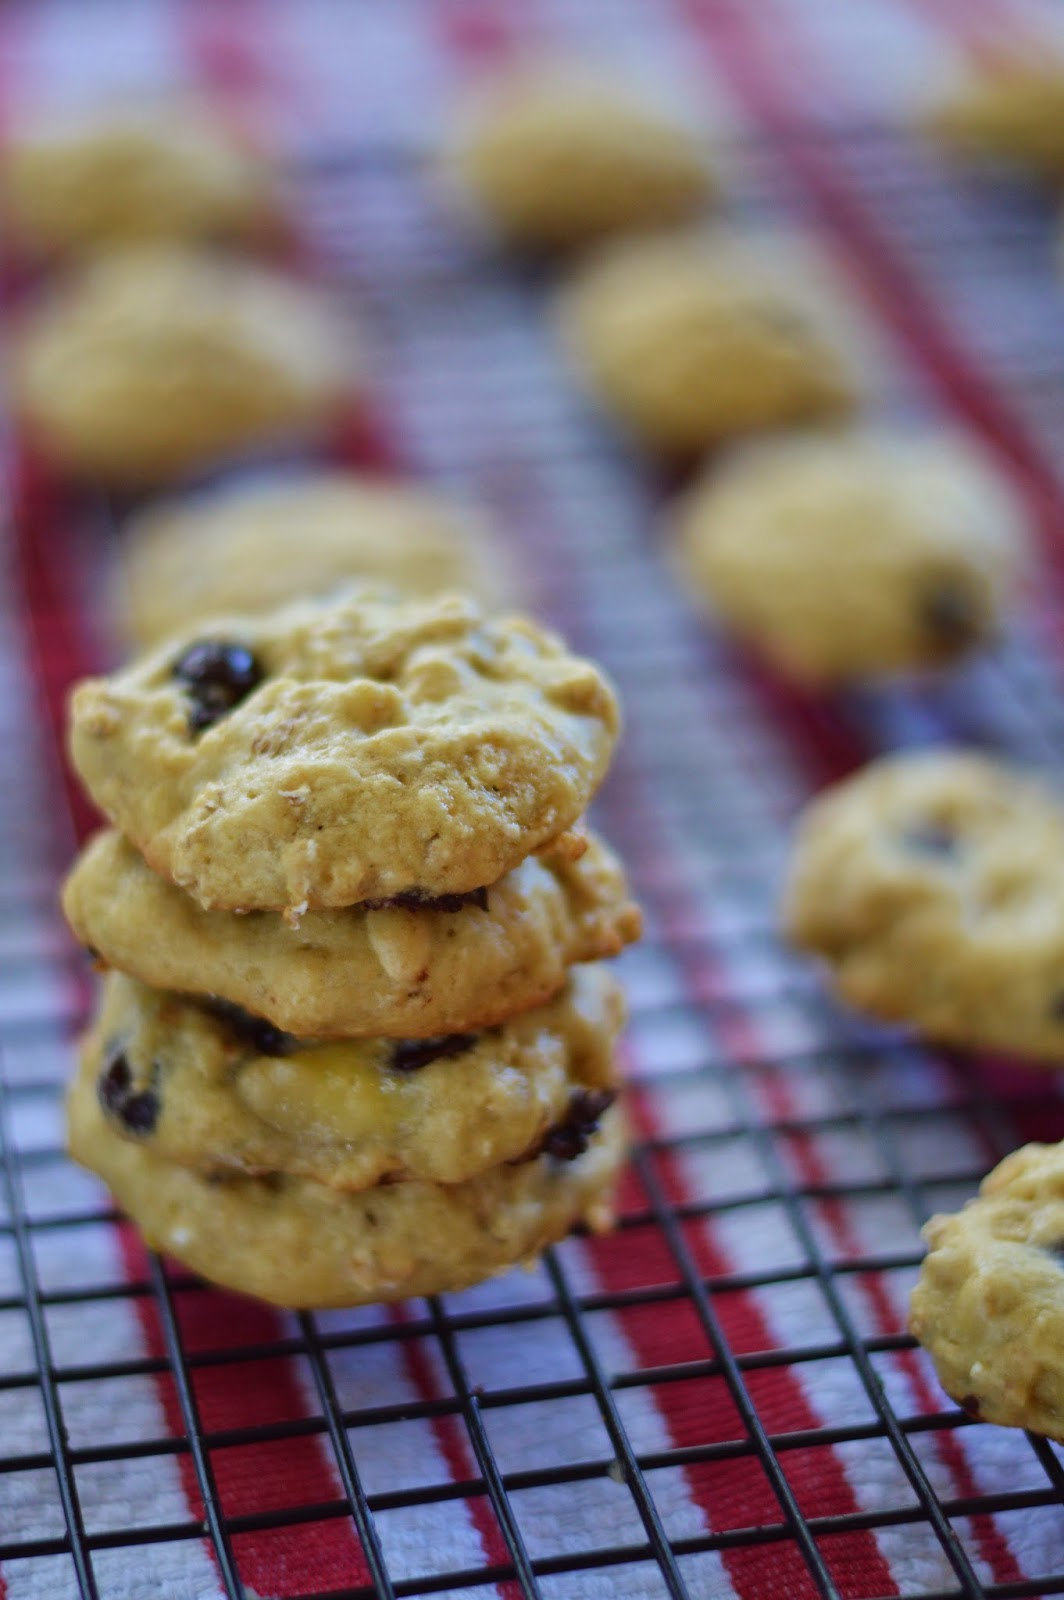 The Art of Comfort Baking: Banana Oatmeal Chocolate Chip Cookies